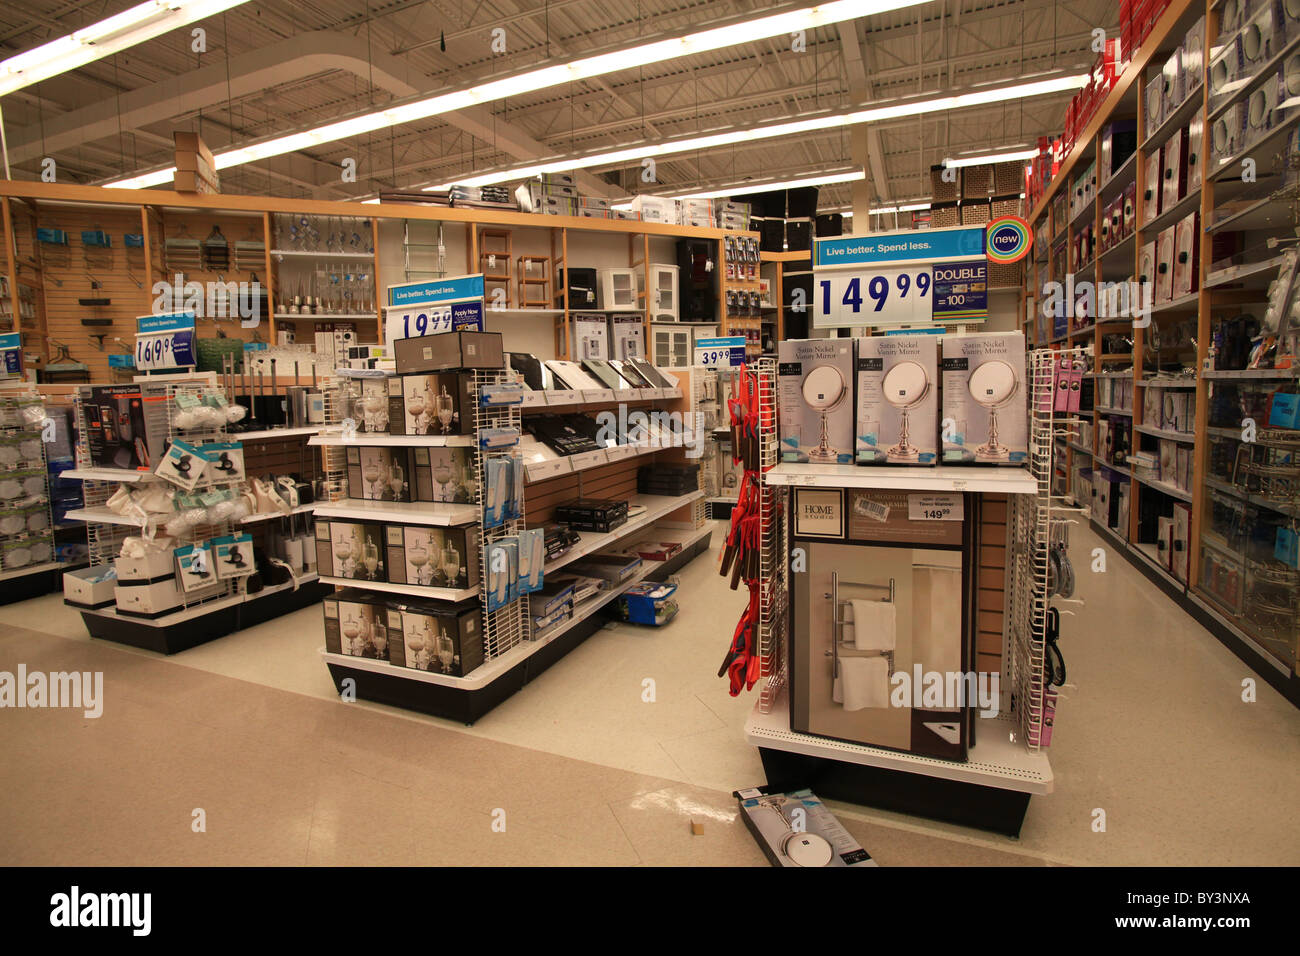 Bathroom Accessories For Sale In Home Outfitters Outlet Store In Stock Photo, Royalty Free Image